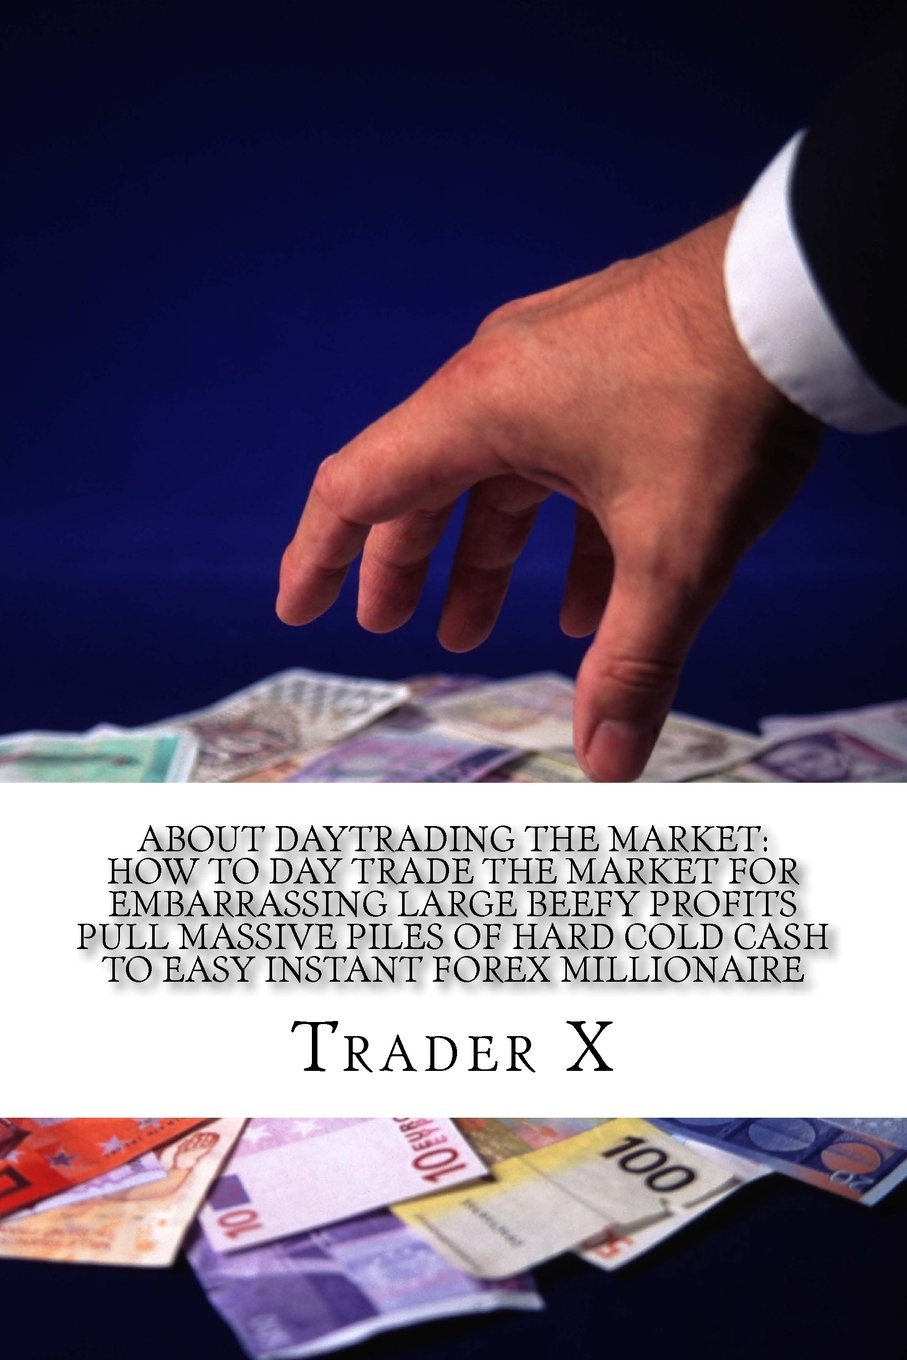 About Daytrading The Market: How To Day Trade The Market For Embarrassing Large Beefy Profits Pull Massive Piles Of Hard Cold Cash To Easy Instant ... 9-5, Live Anywhere And Join The New Rich